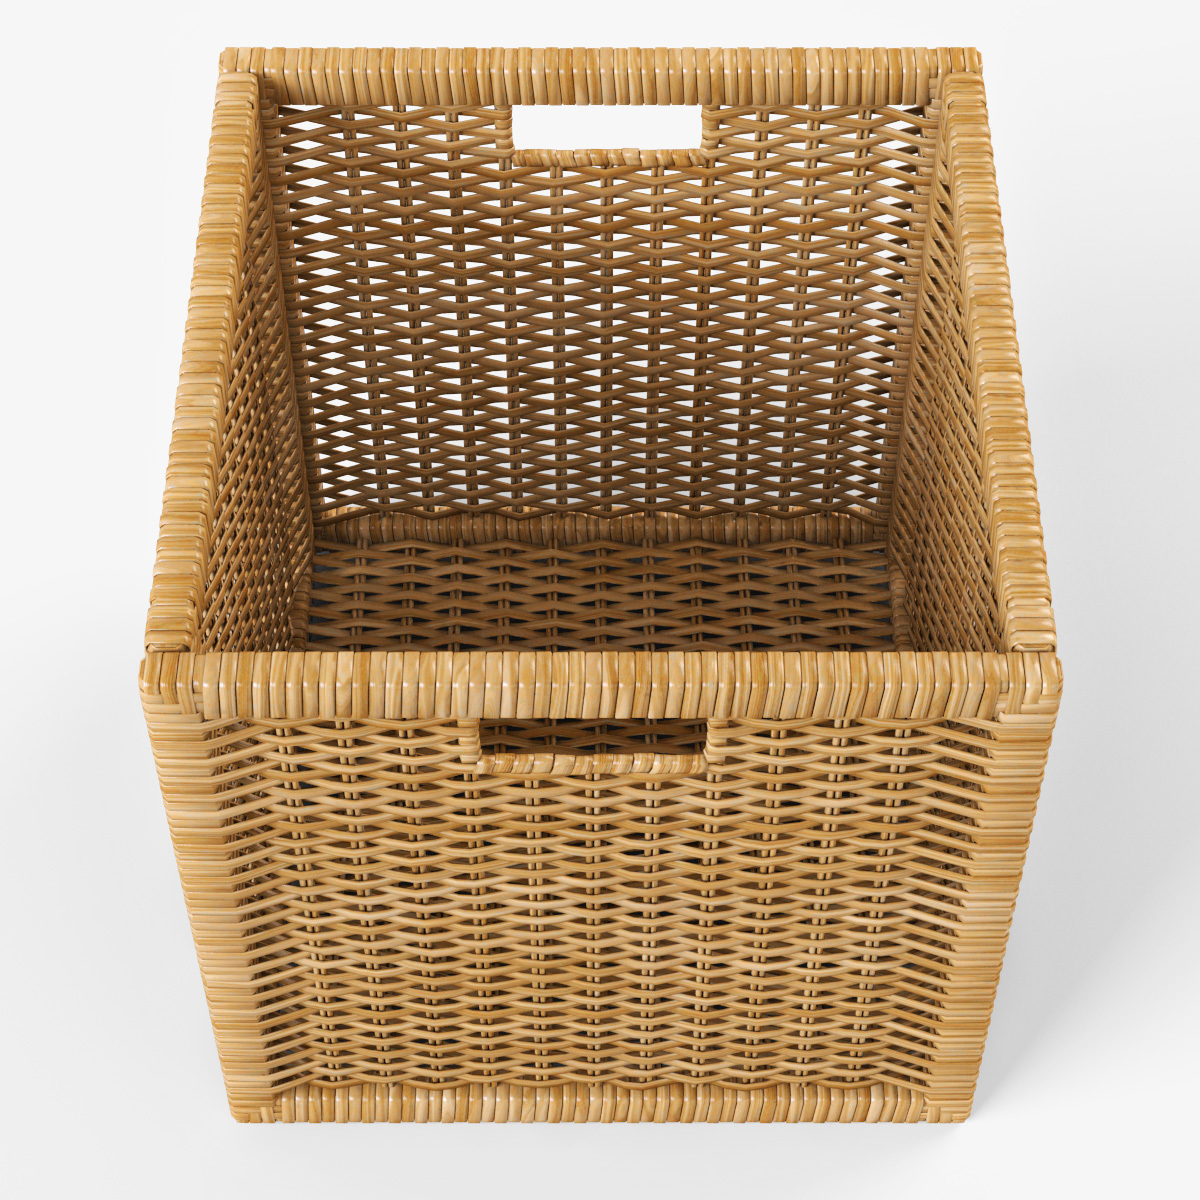 rattan basket ikea branas natural color by markelos 3docean. Black Bedroom Furniture Sets. Home Design Ideas